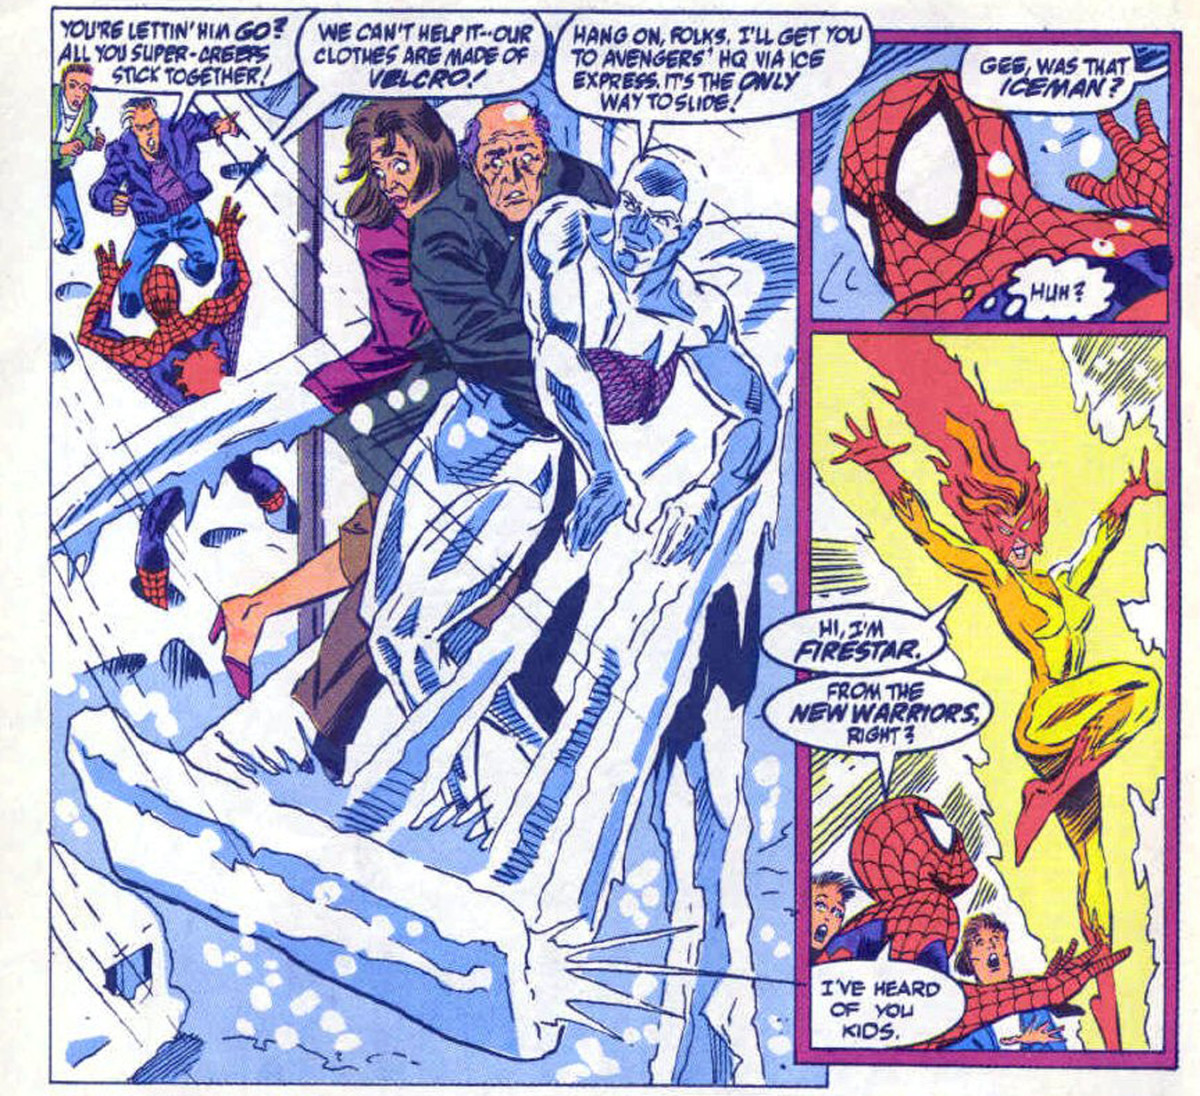 Panels from Web of Spider-Man #75, depicting the first in-continuity meeting of Spider-Man and Firestar.